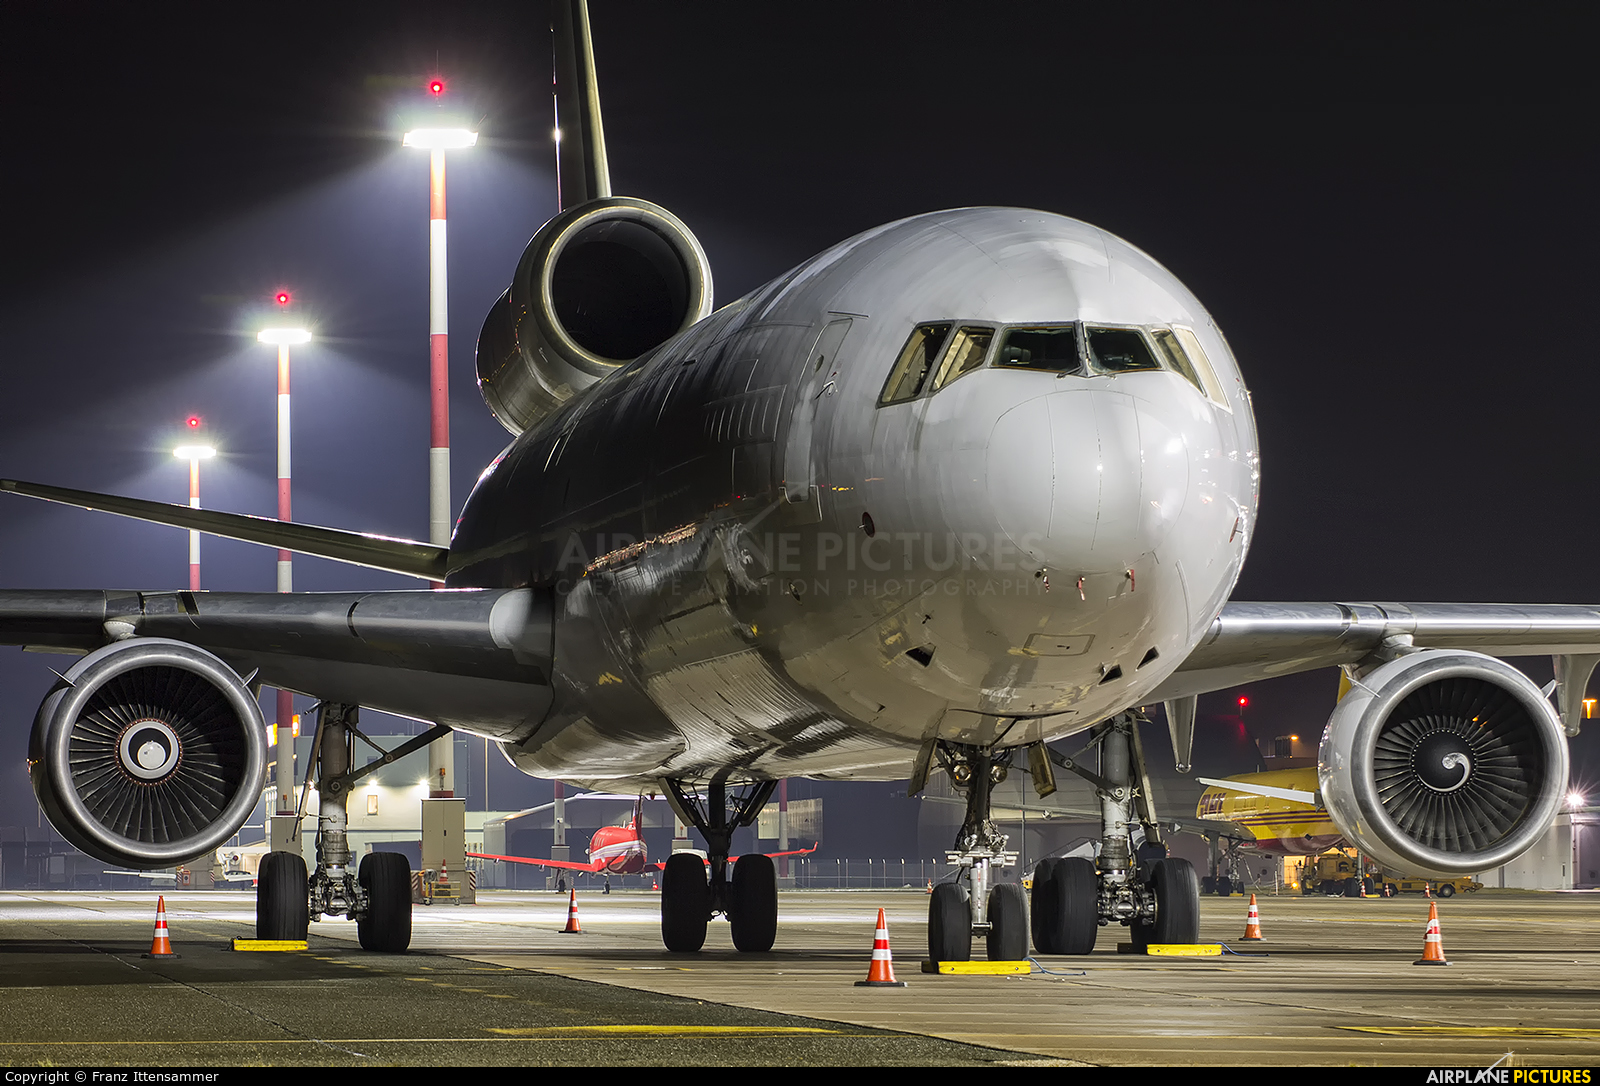 Western Global Airlines N512JN aircraft at Linz